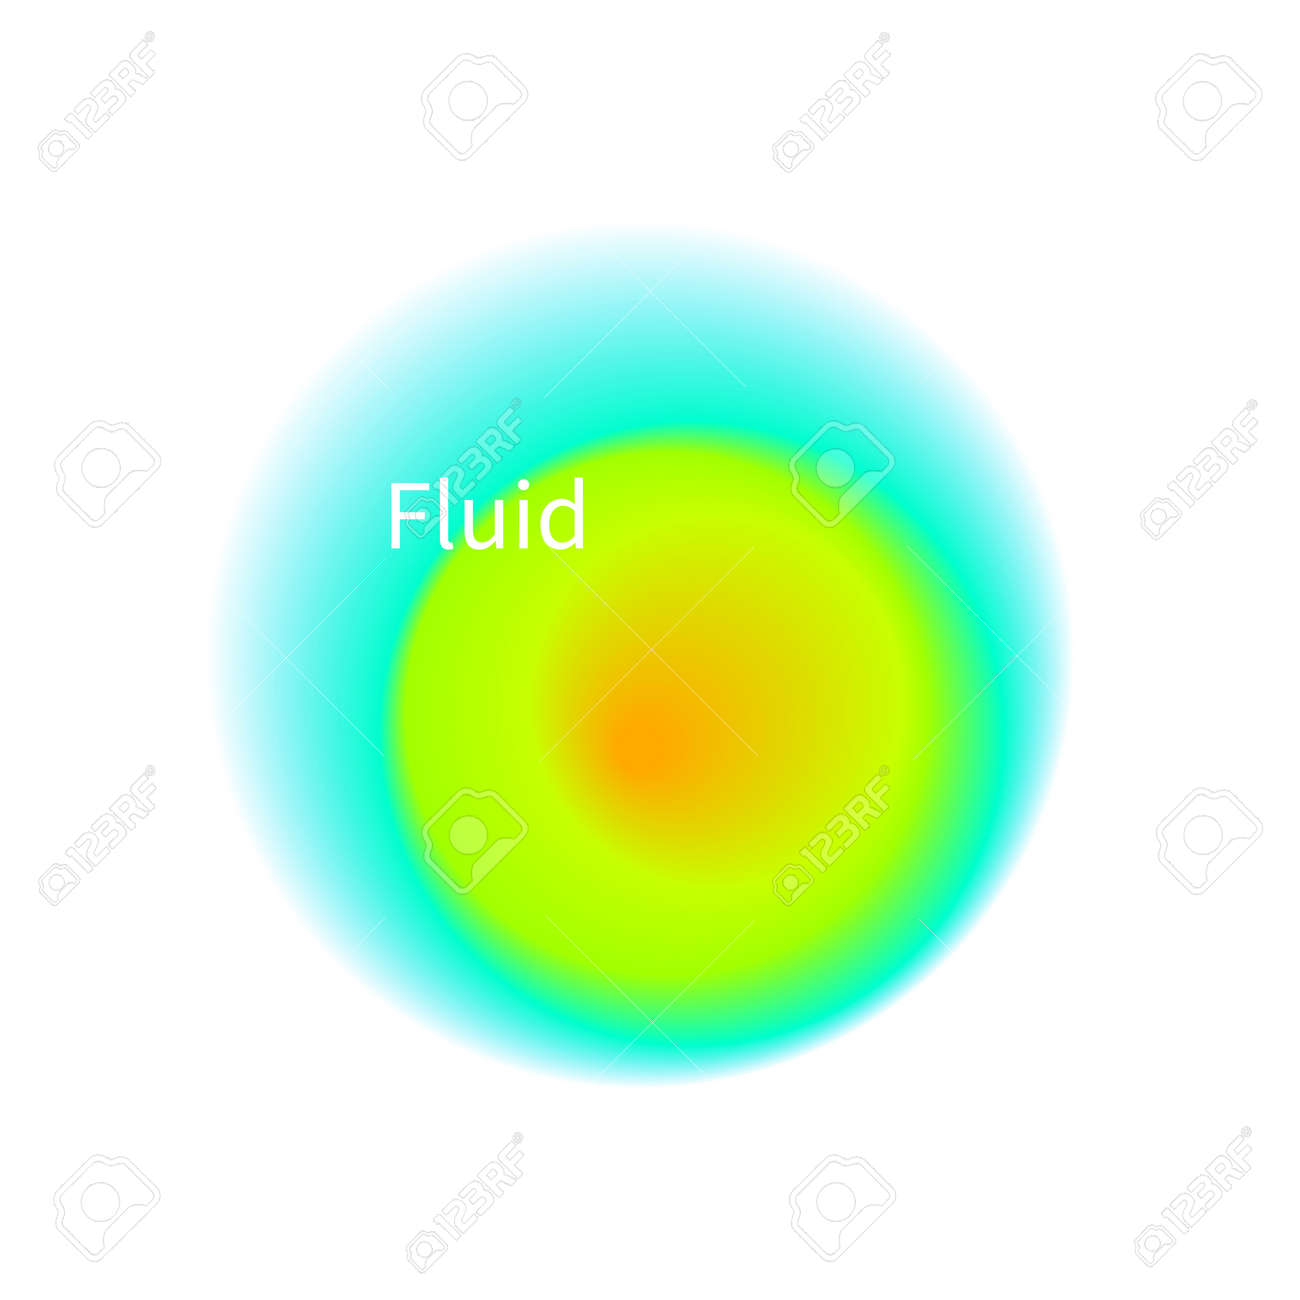 Blurry abstract round frame. Futuristic circle, fluid - 171218366